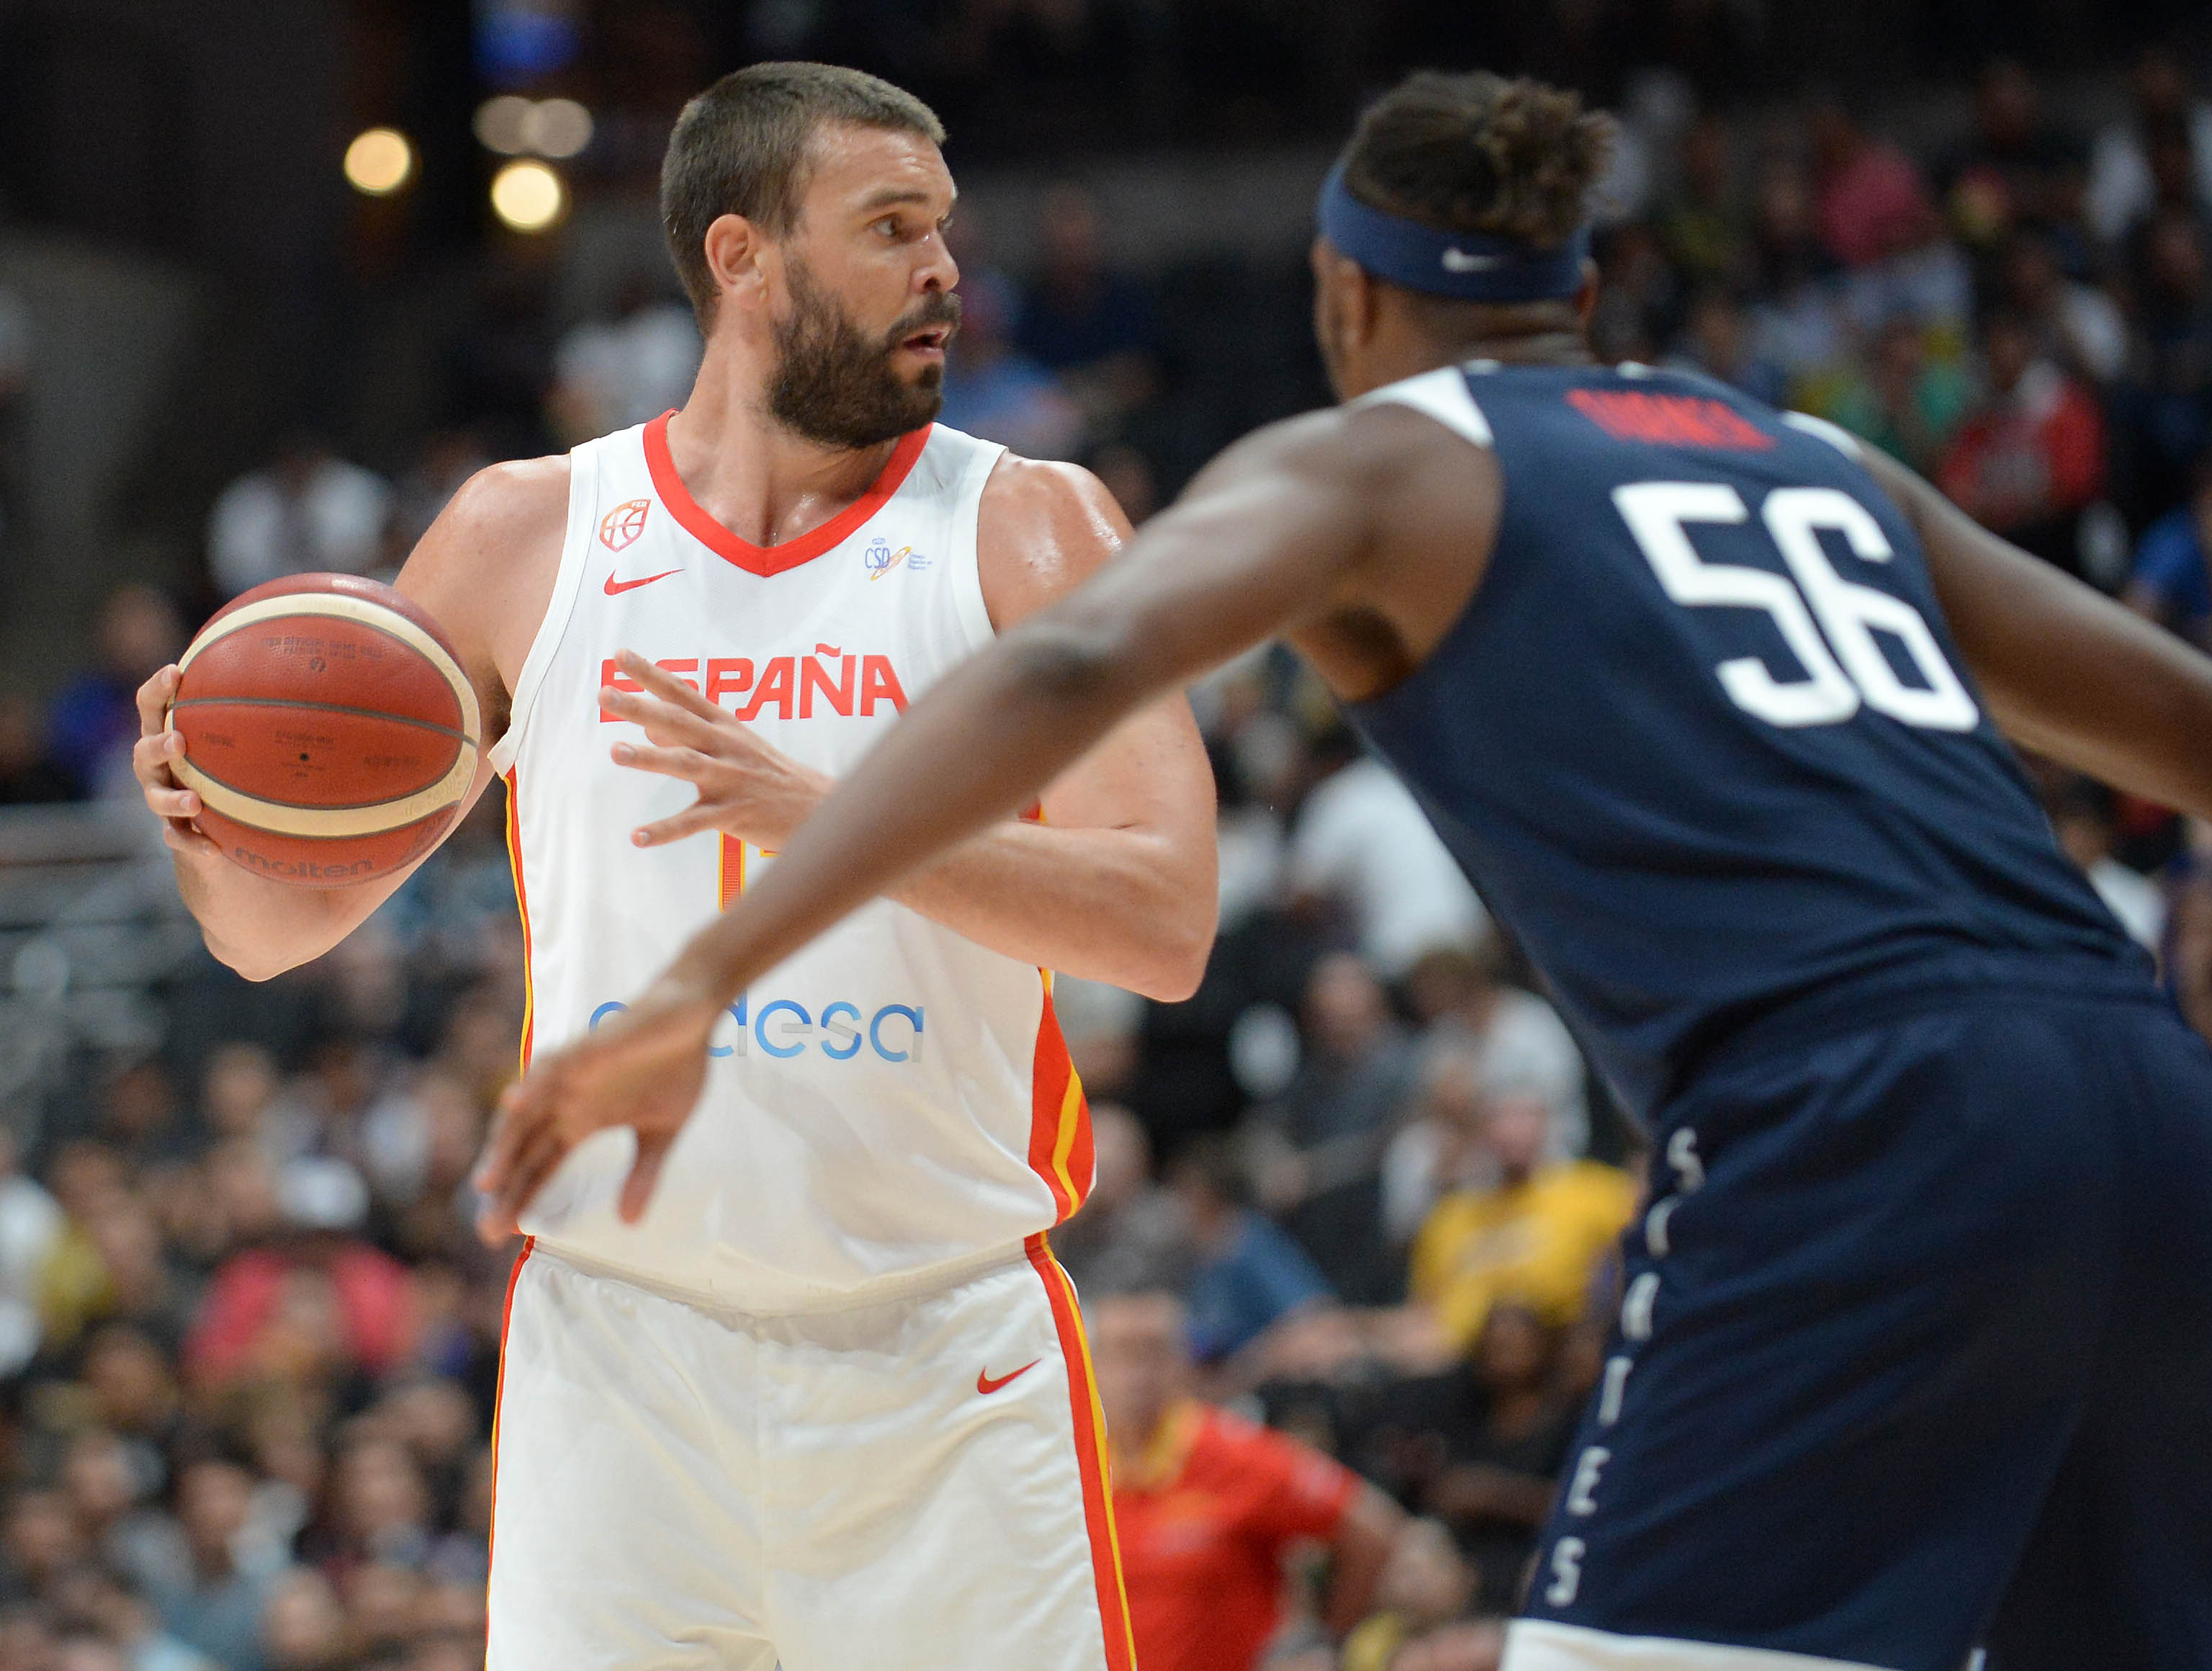 Spain to play Argentina in gold medal game of FIBA World Cup